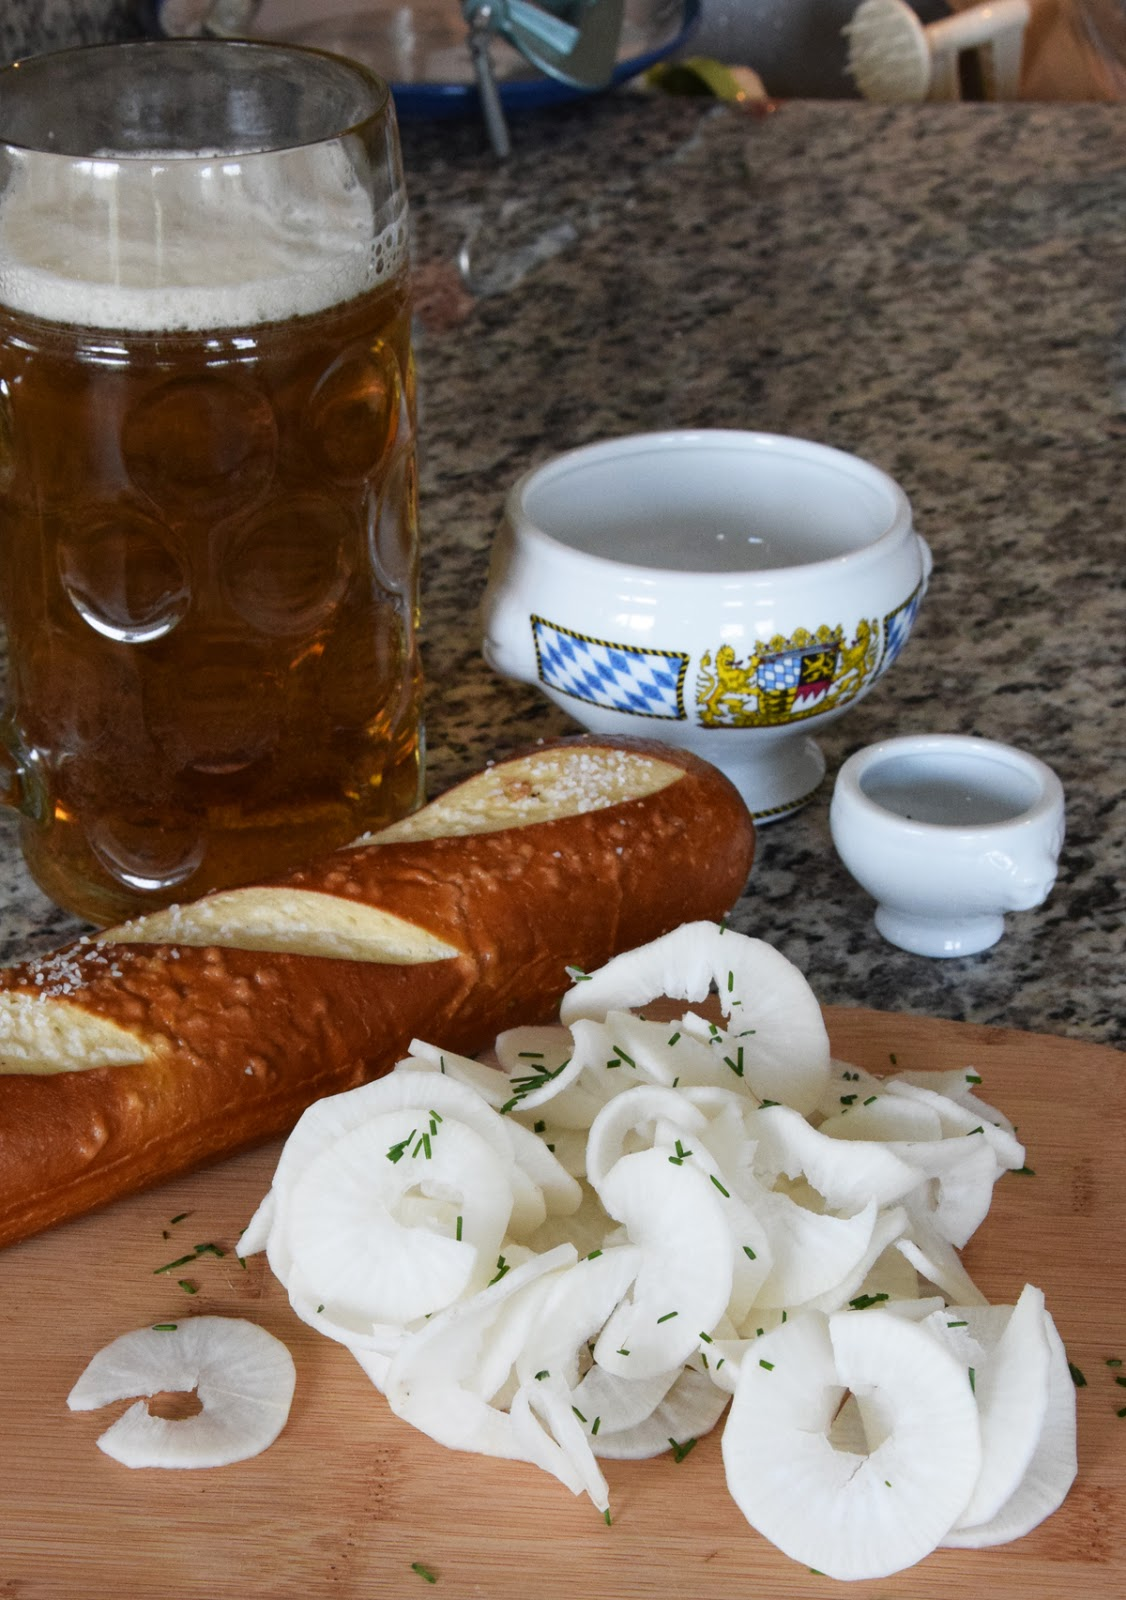 Radi, the German Radish They Eat with Beer